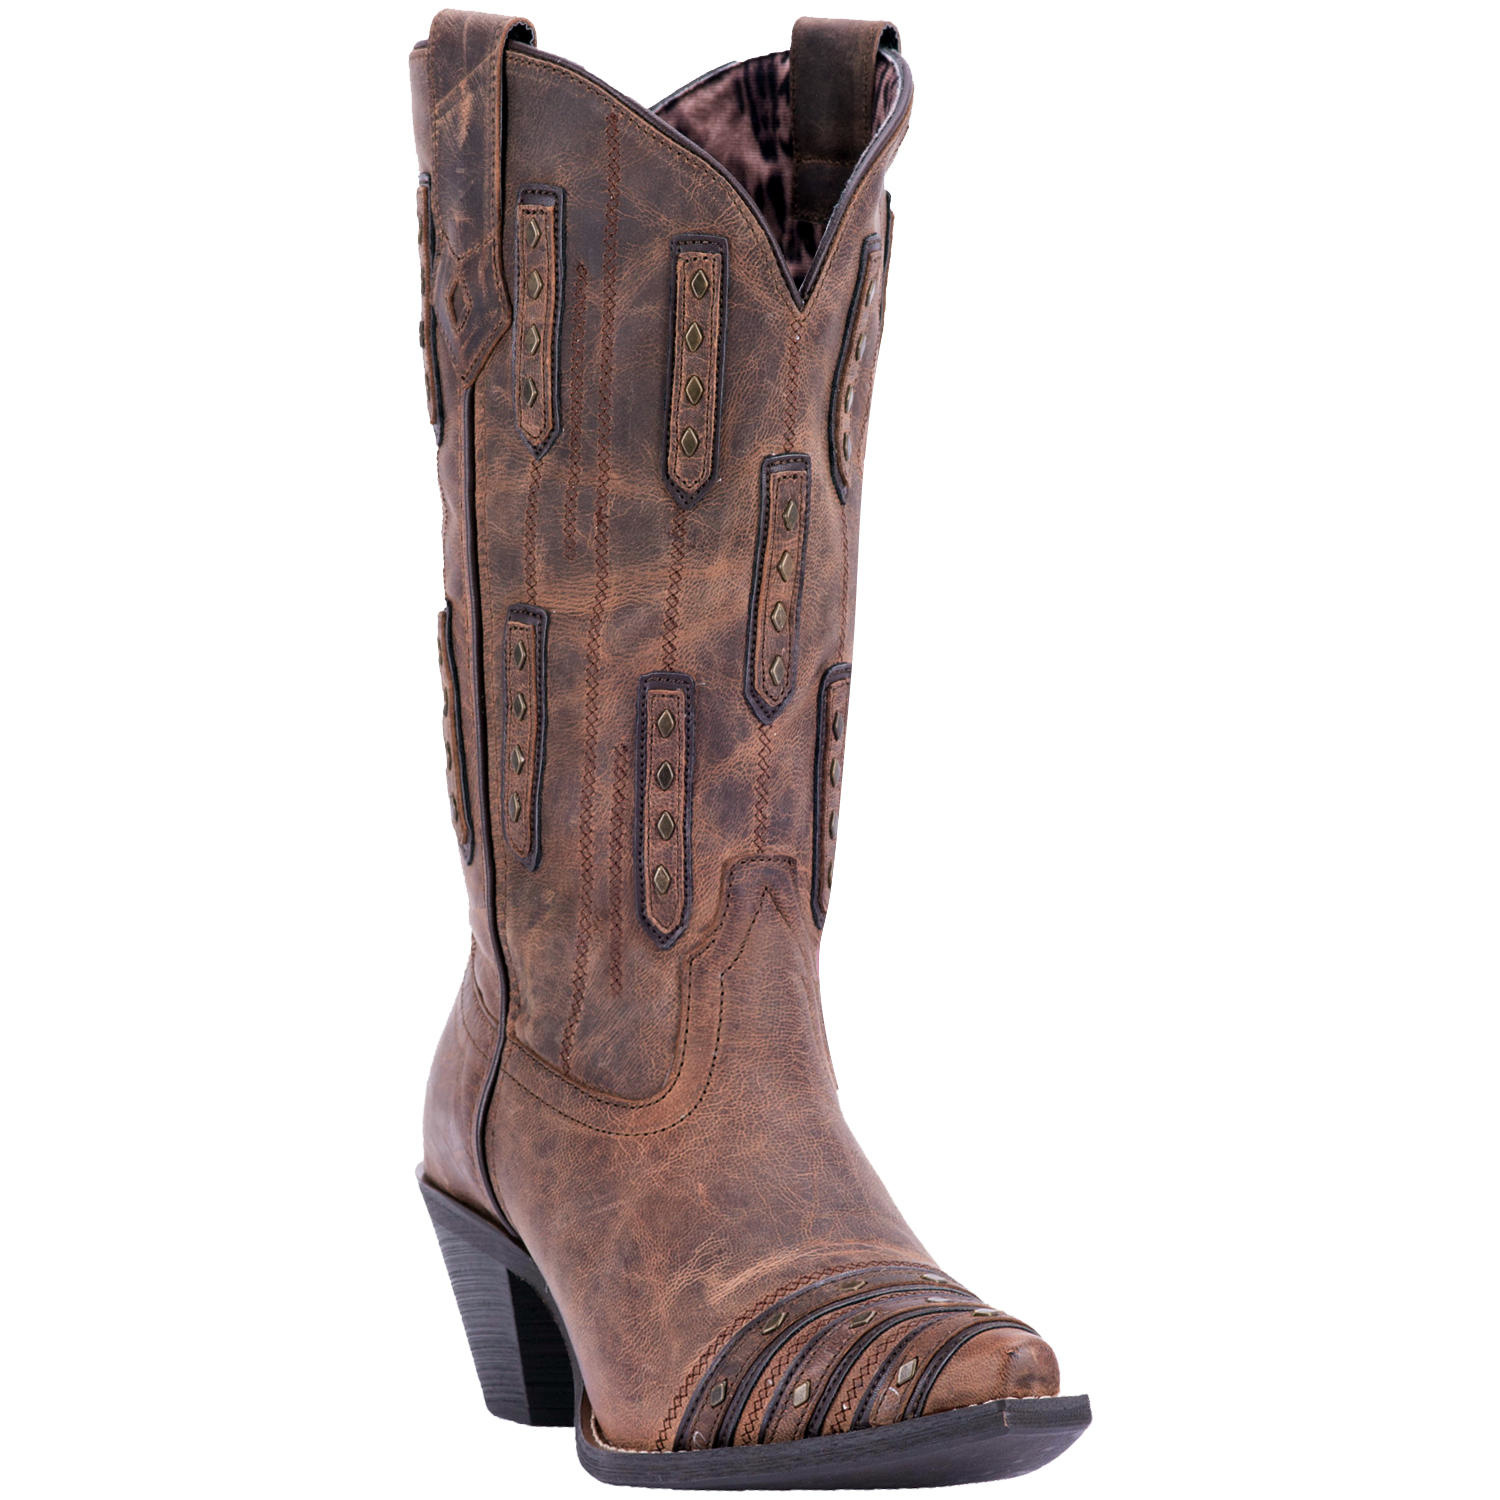 Dan Post Boot 52124 Laredo Whiskey Sour Ladies Western Boot